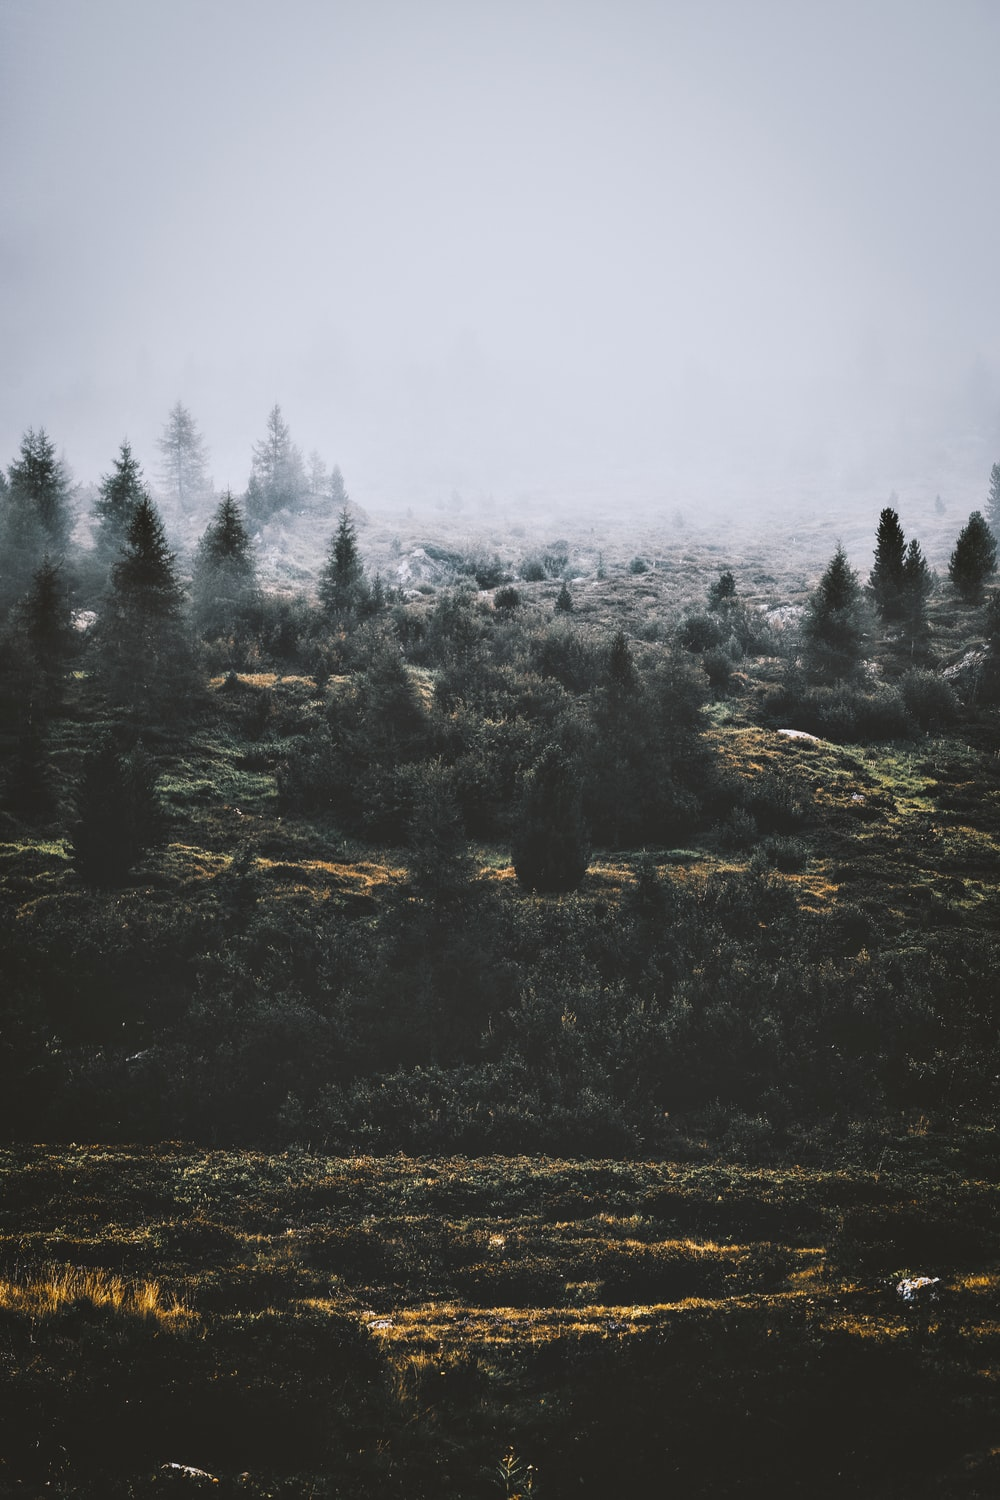 pine trees covered countryside